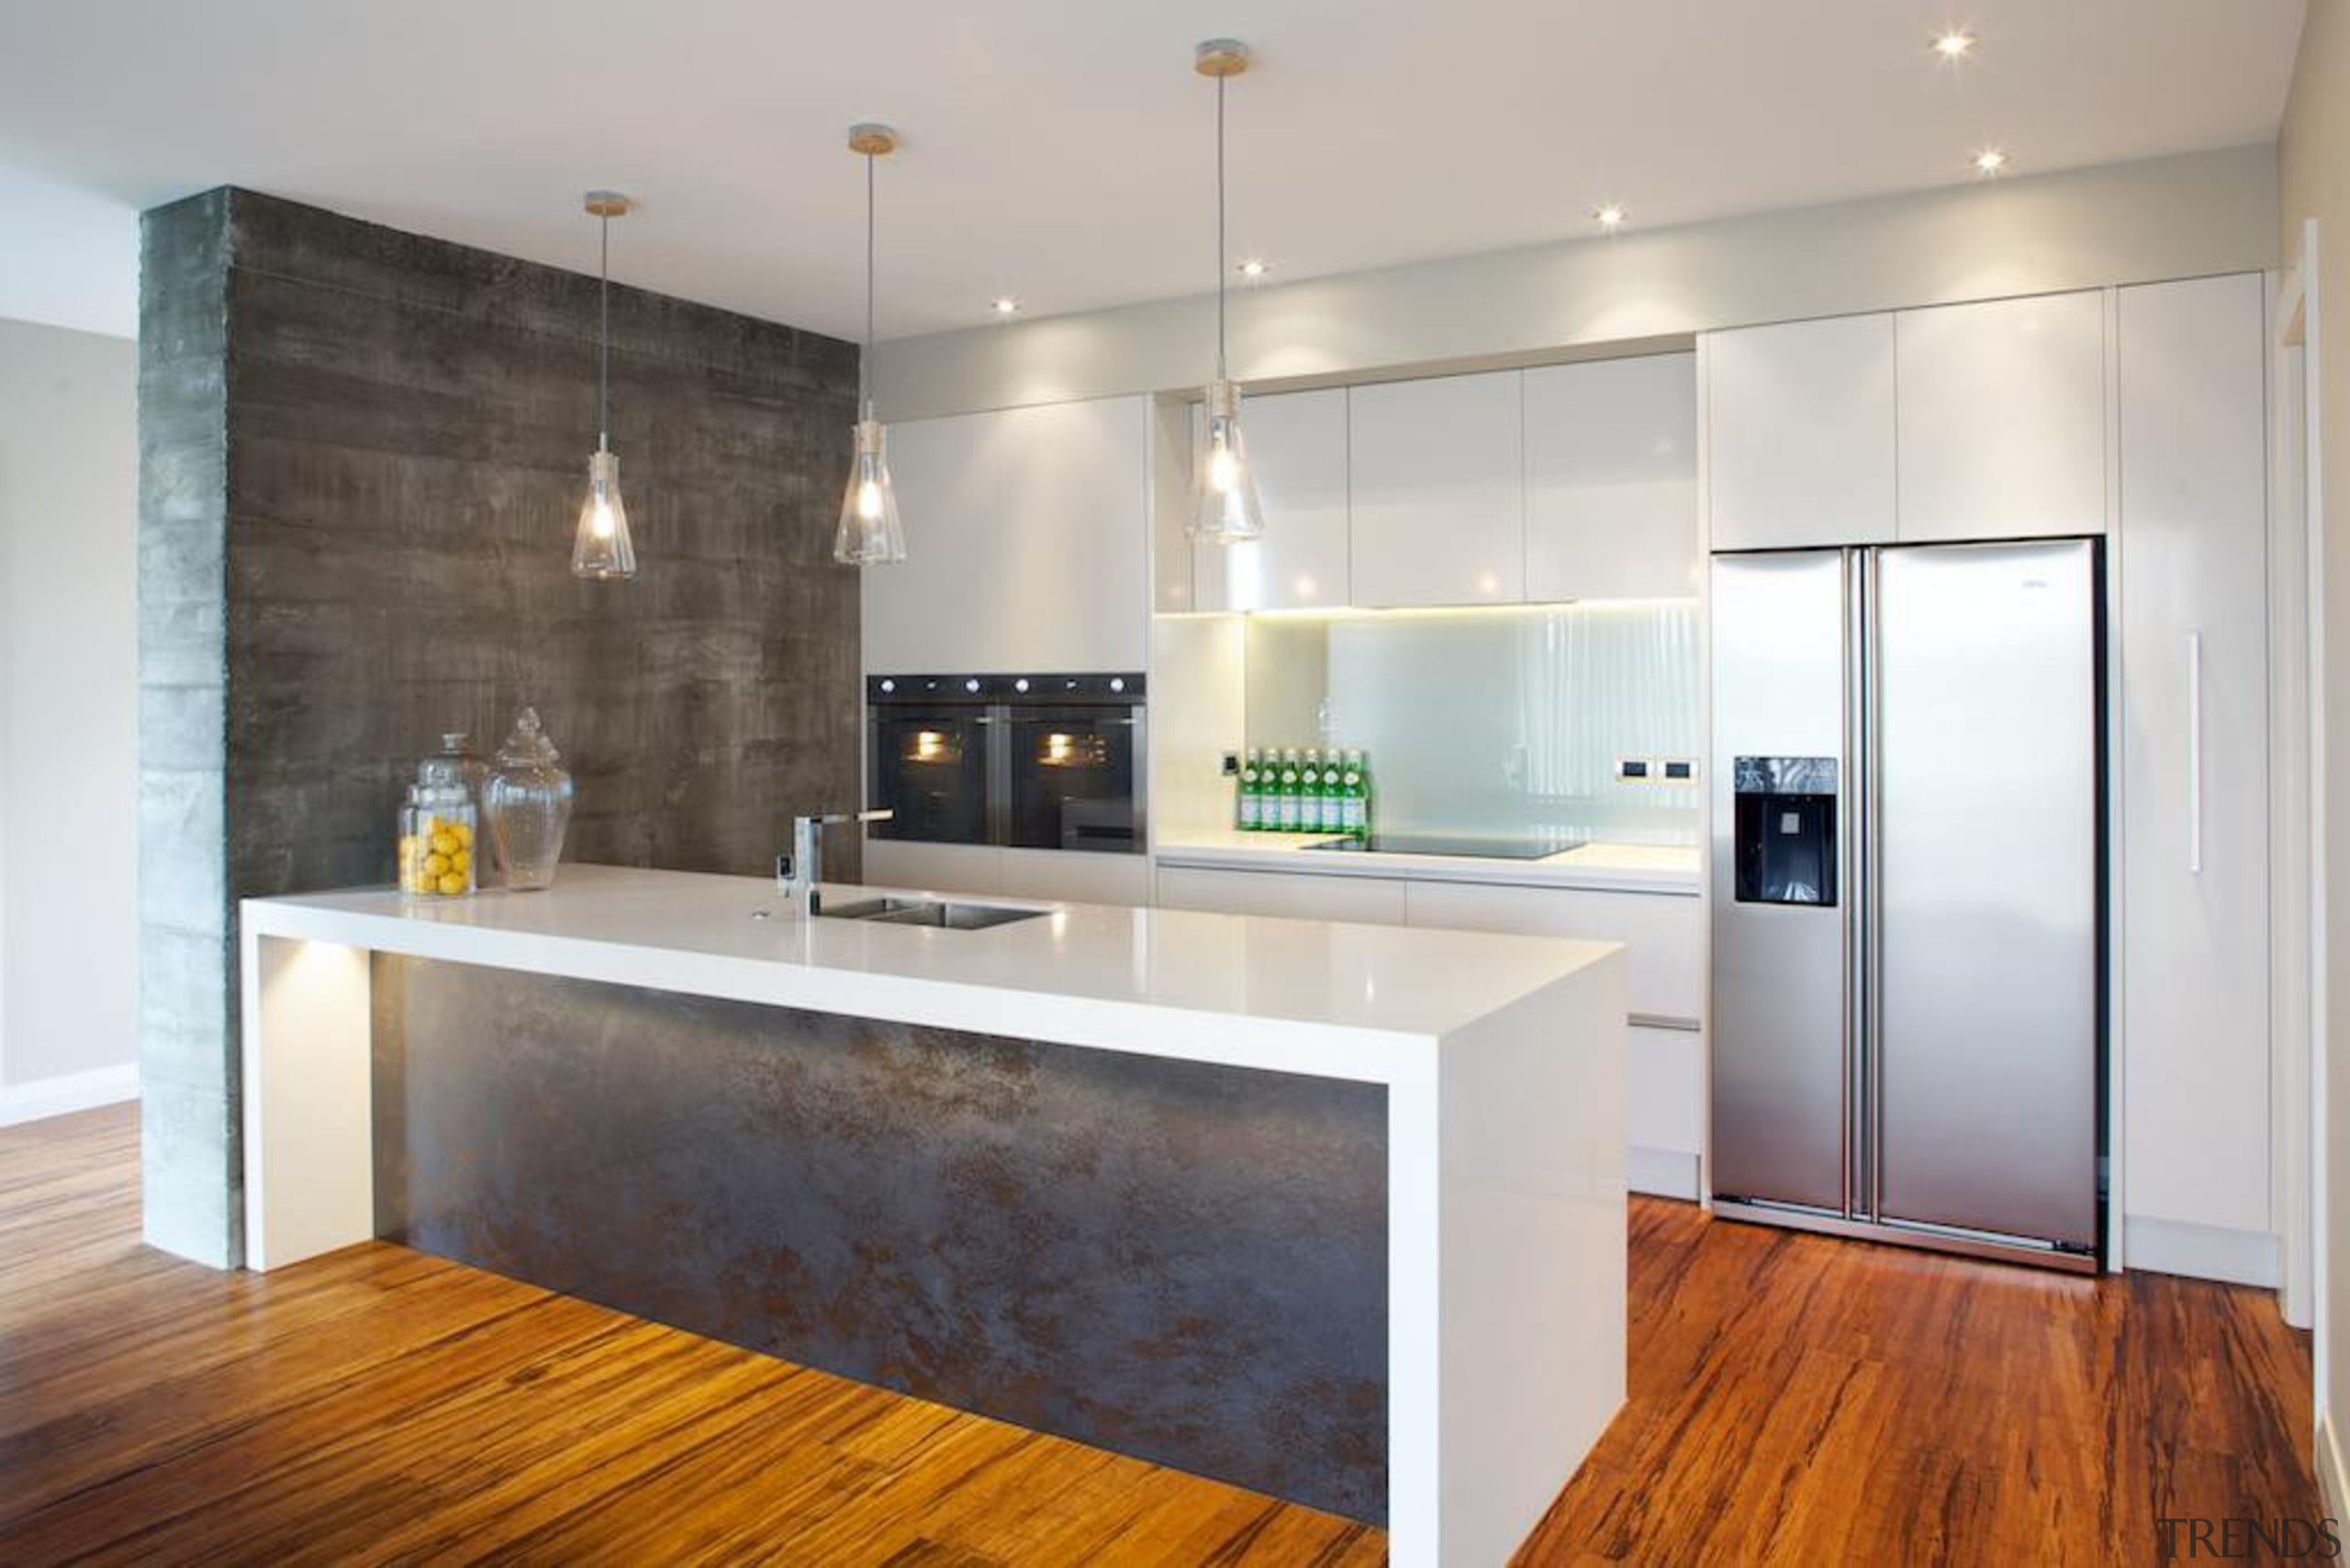 This industrial style kitchen makes use of a cabinetry, countertop, floor, flooring, interior design, kitchen, real estate, room, wood flooring, gray